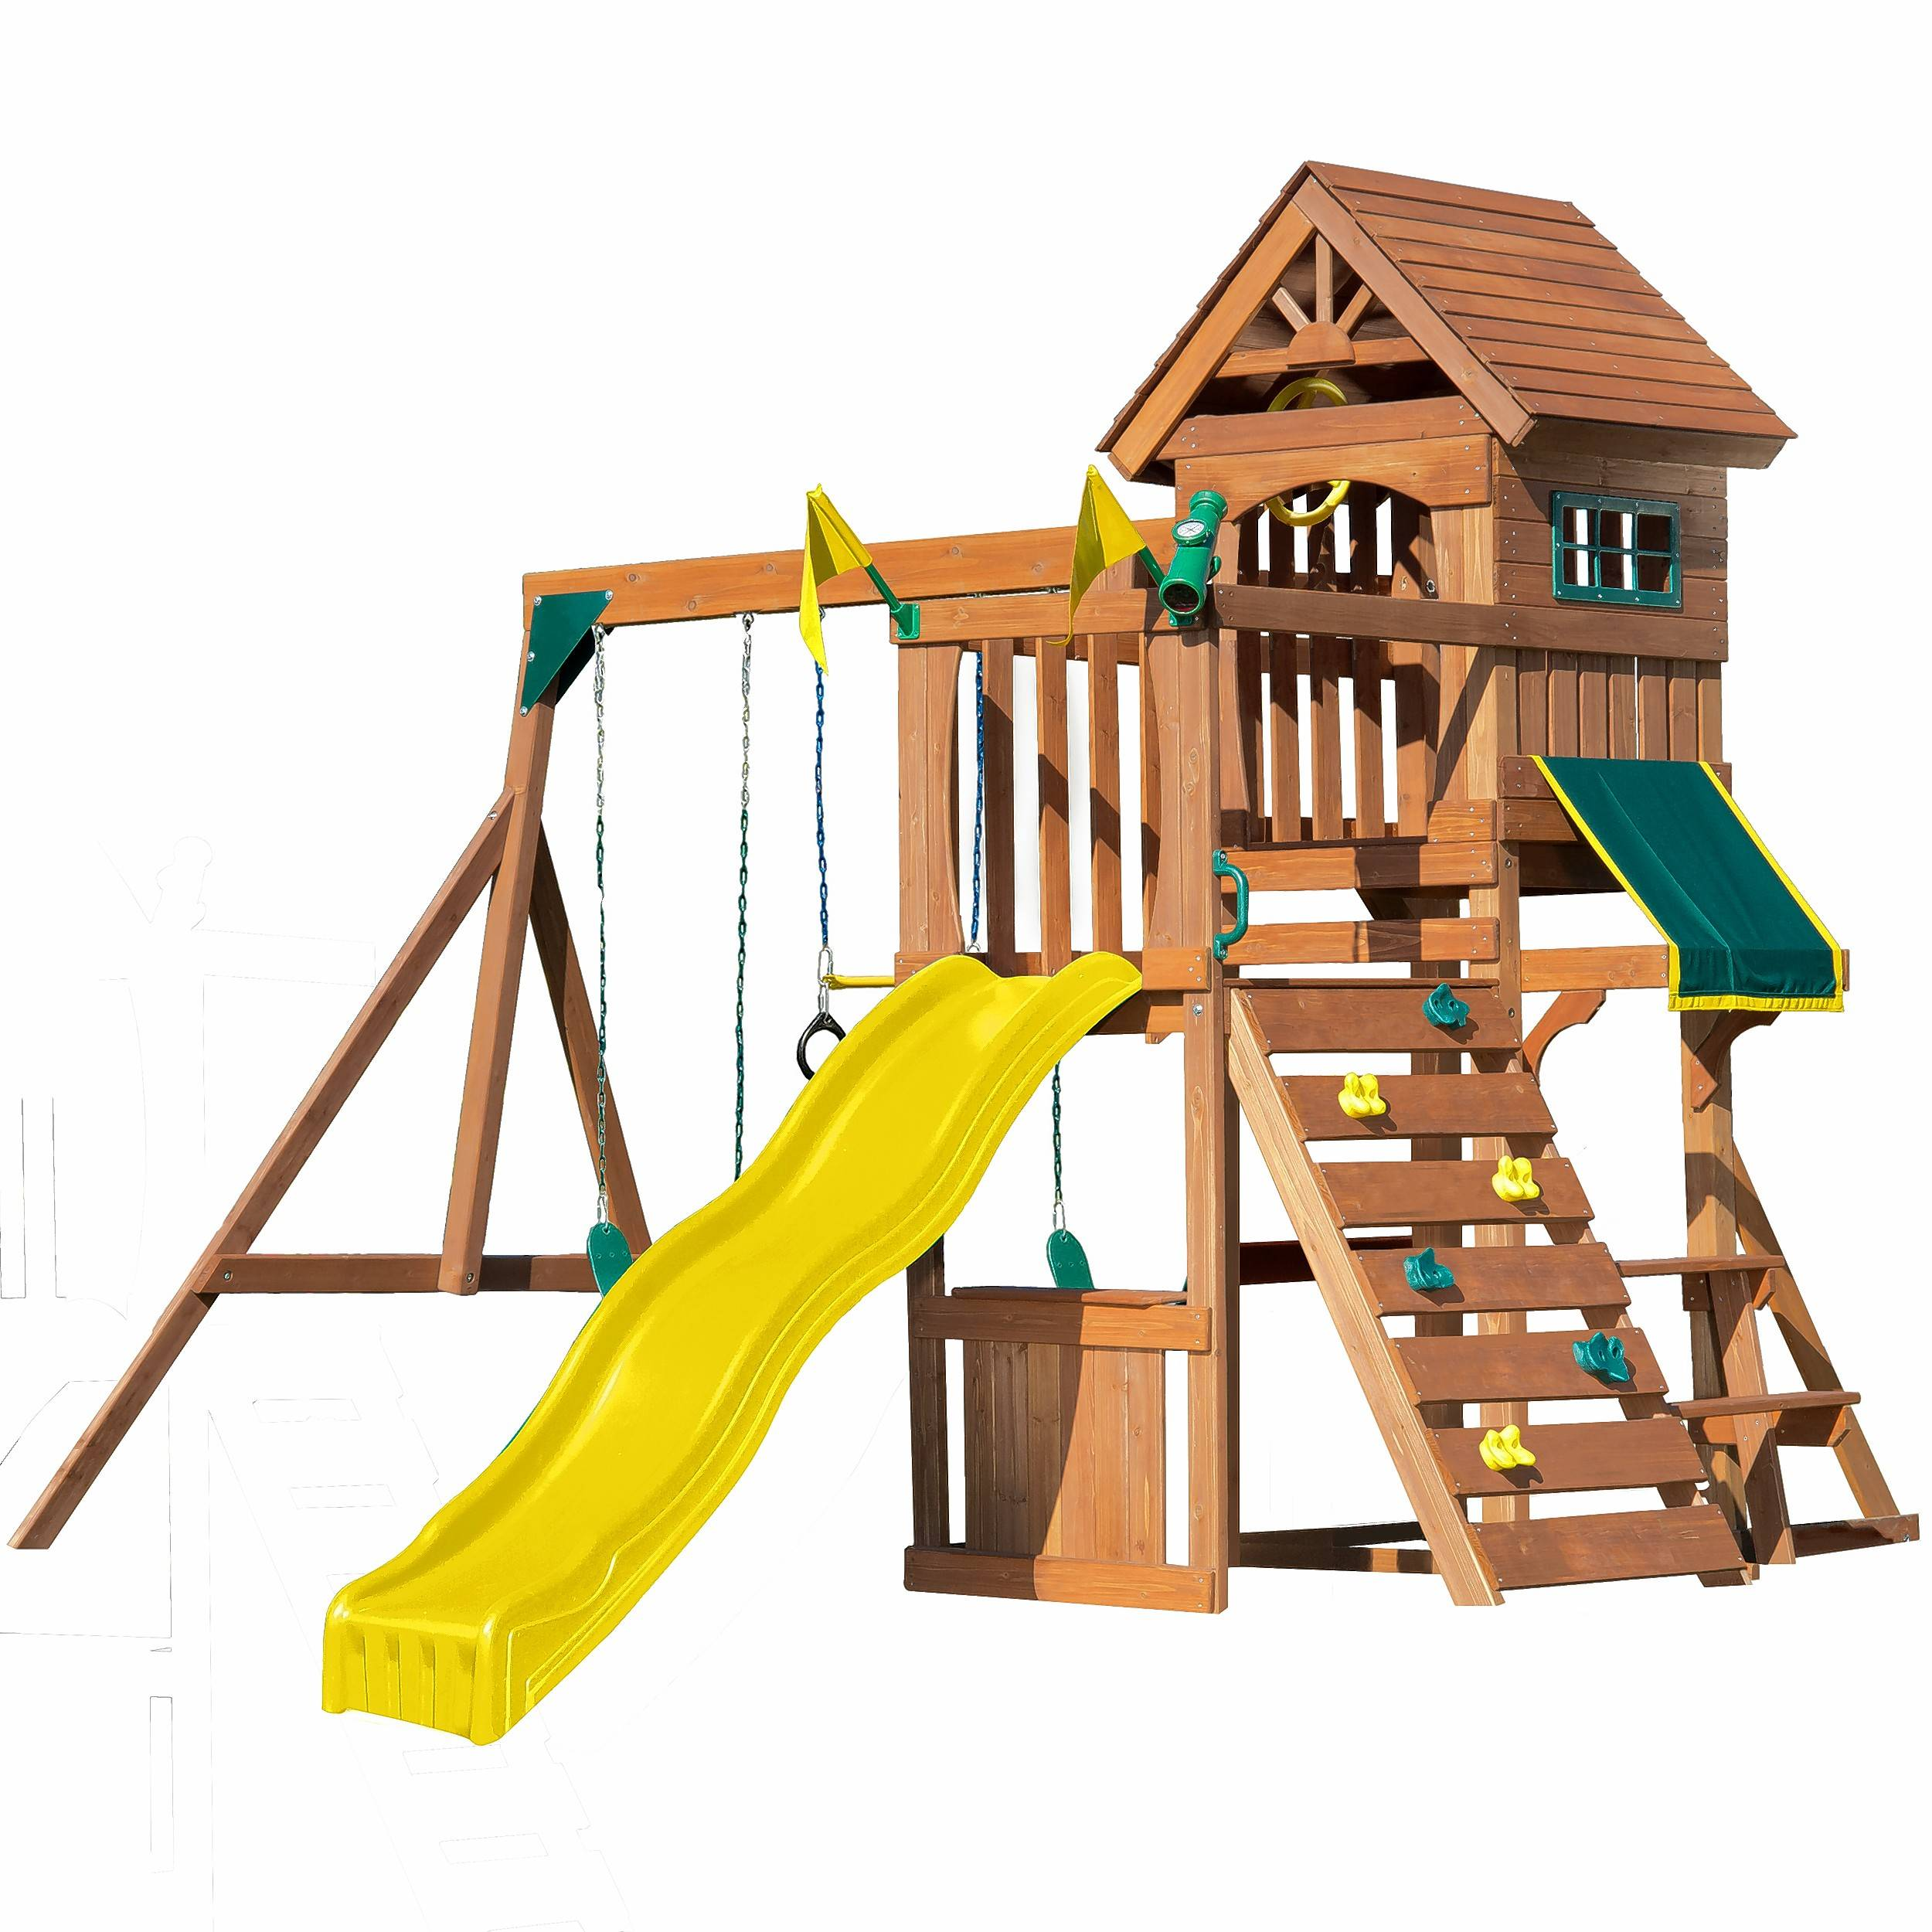 The Swing n' Slide Playset can be expanded as your child grows.